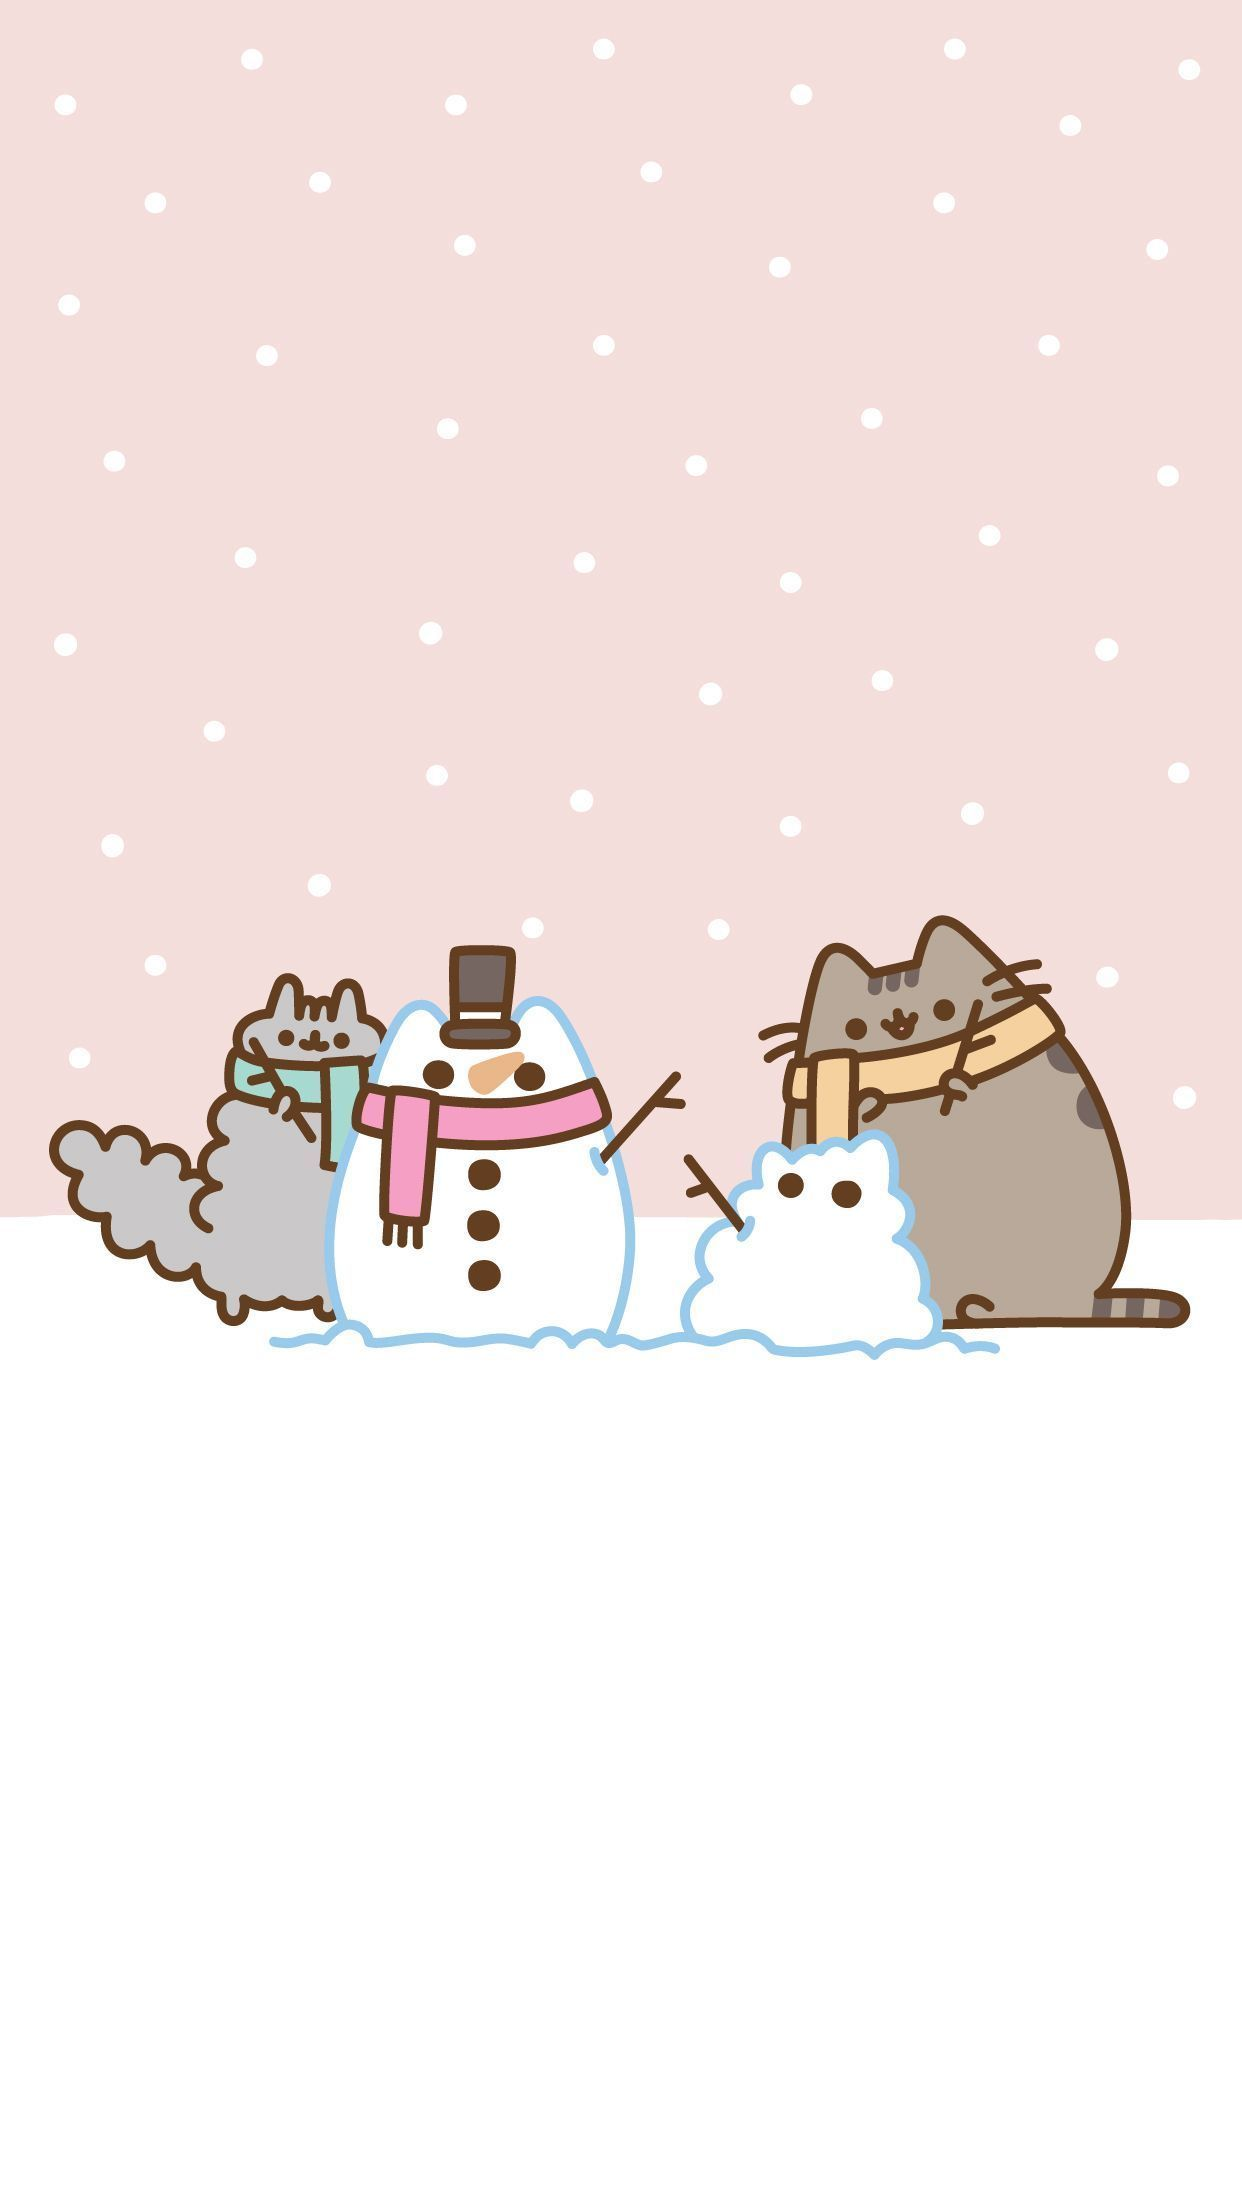 Iphone Free Pusheen Christmas Wallpaper Iphonewallpapers Takinggreatpicswithaniphone Cute Christmas Wallpaper Pusheen Christmas Pusheen Cute